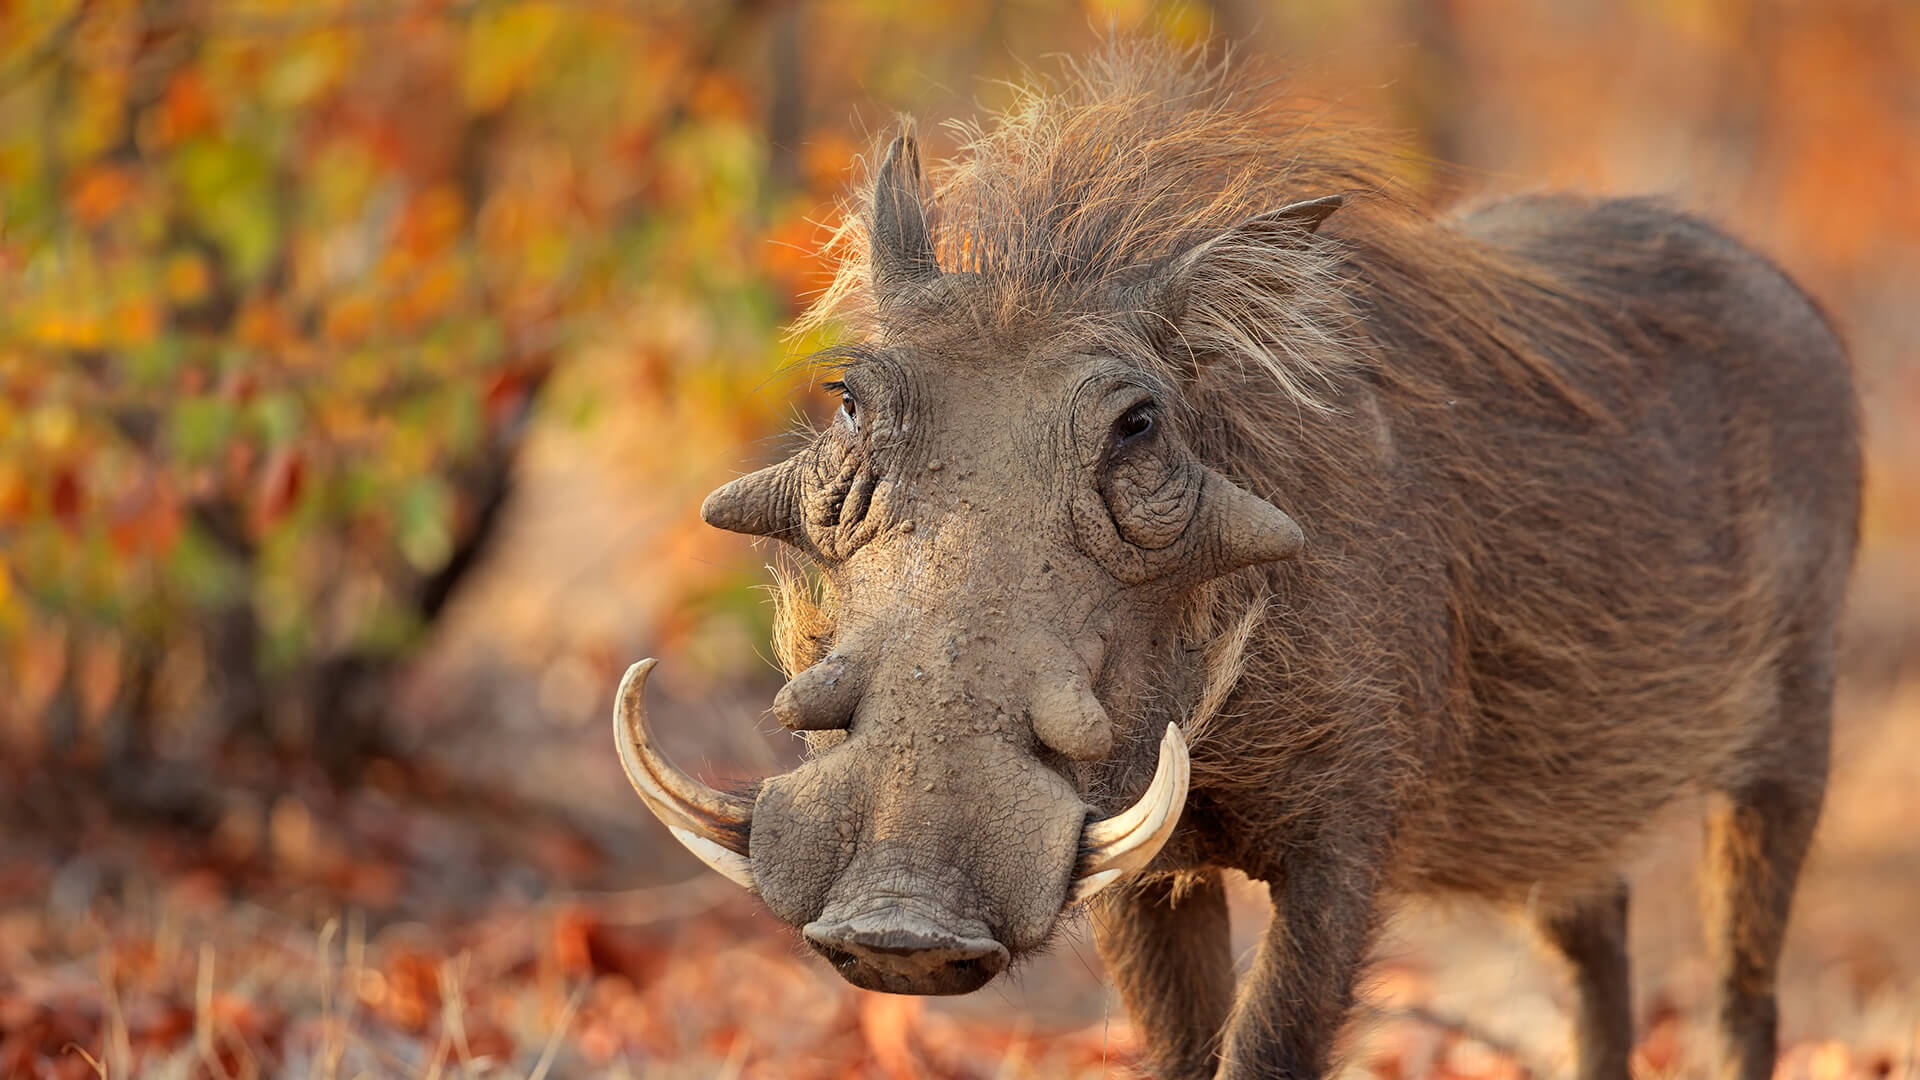 animals_hero_warthog.jpg